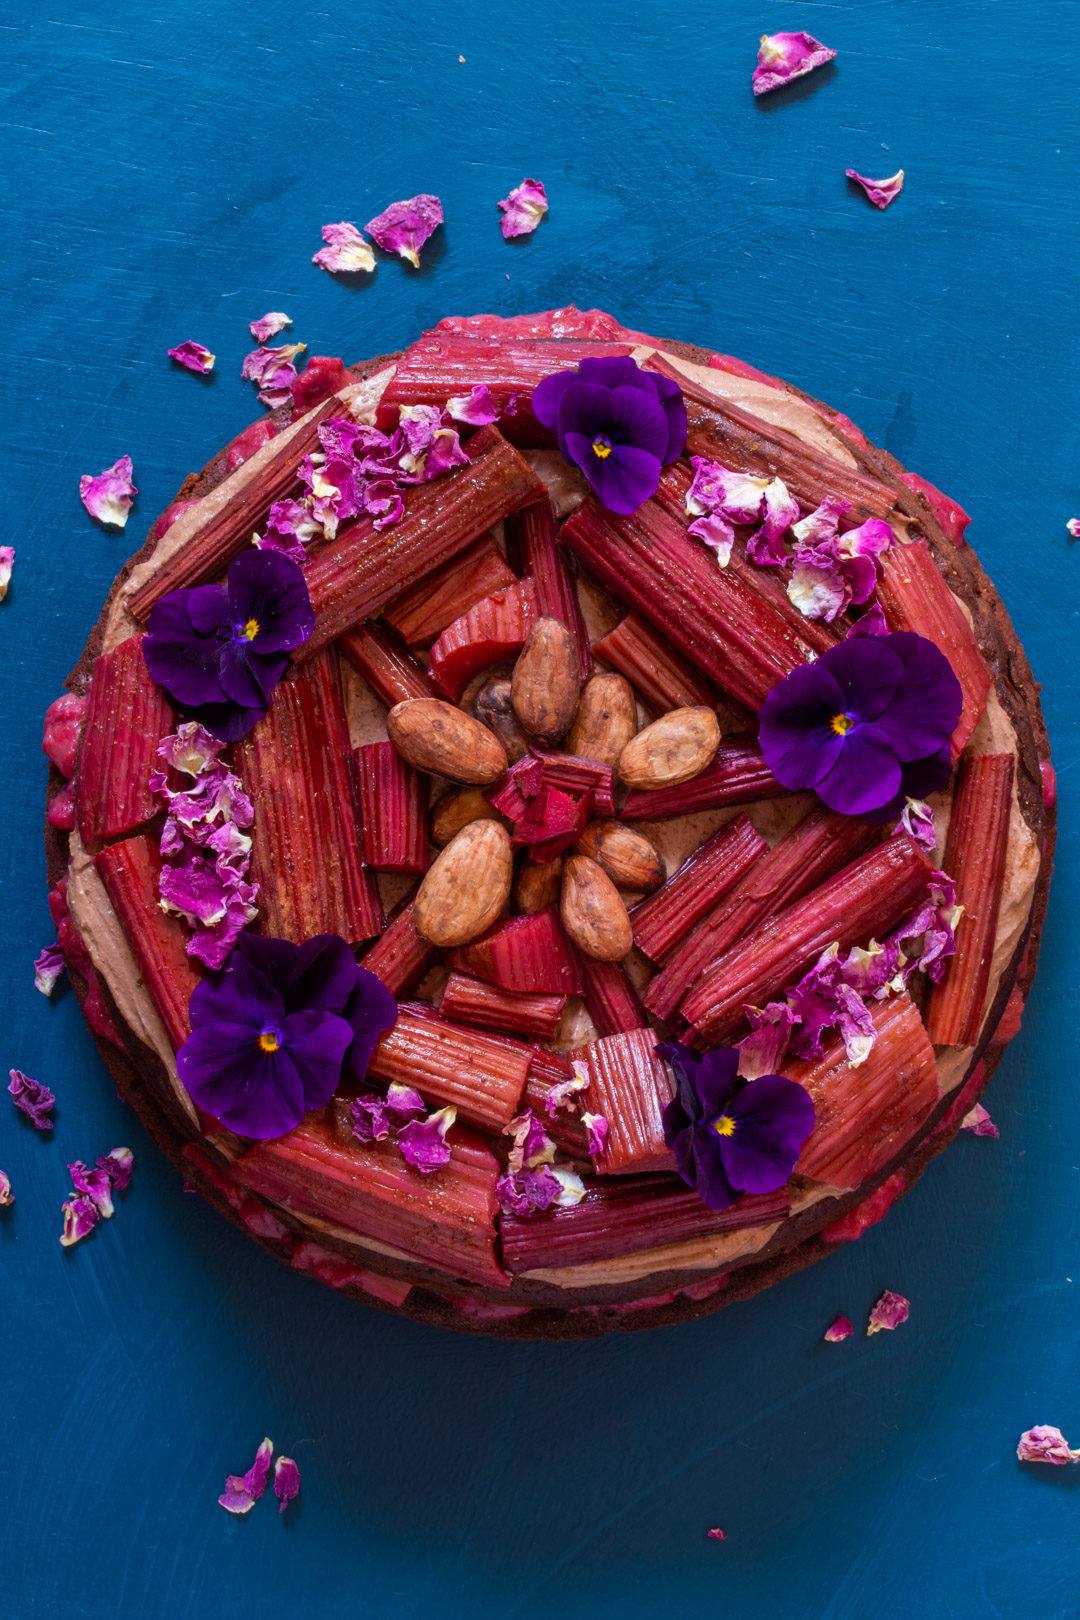 rhubarb cacao spice cake from above